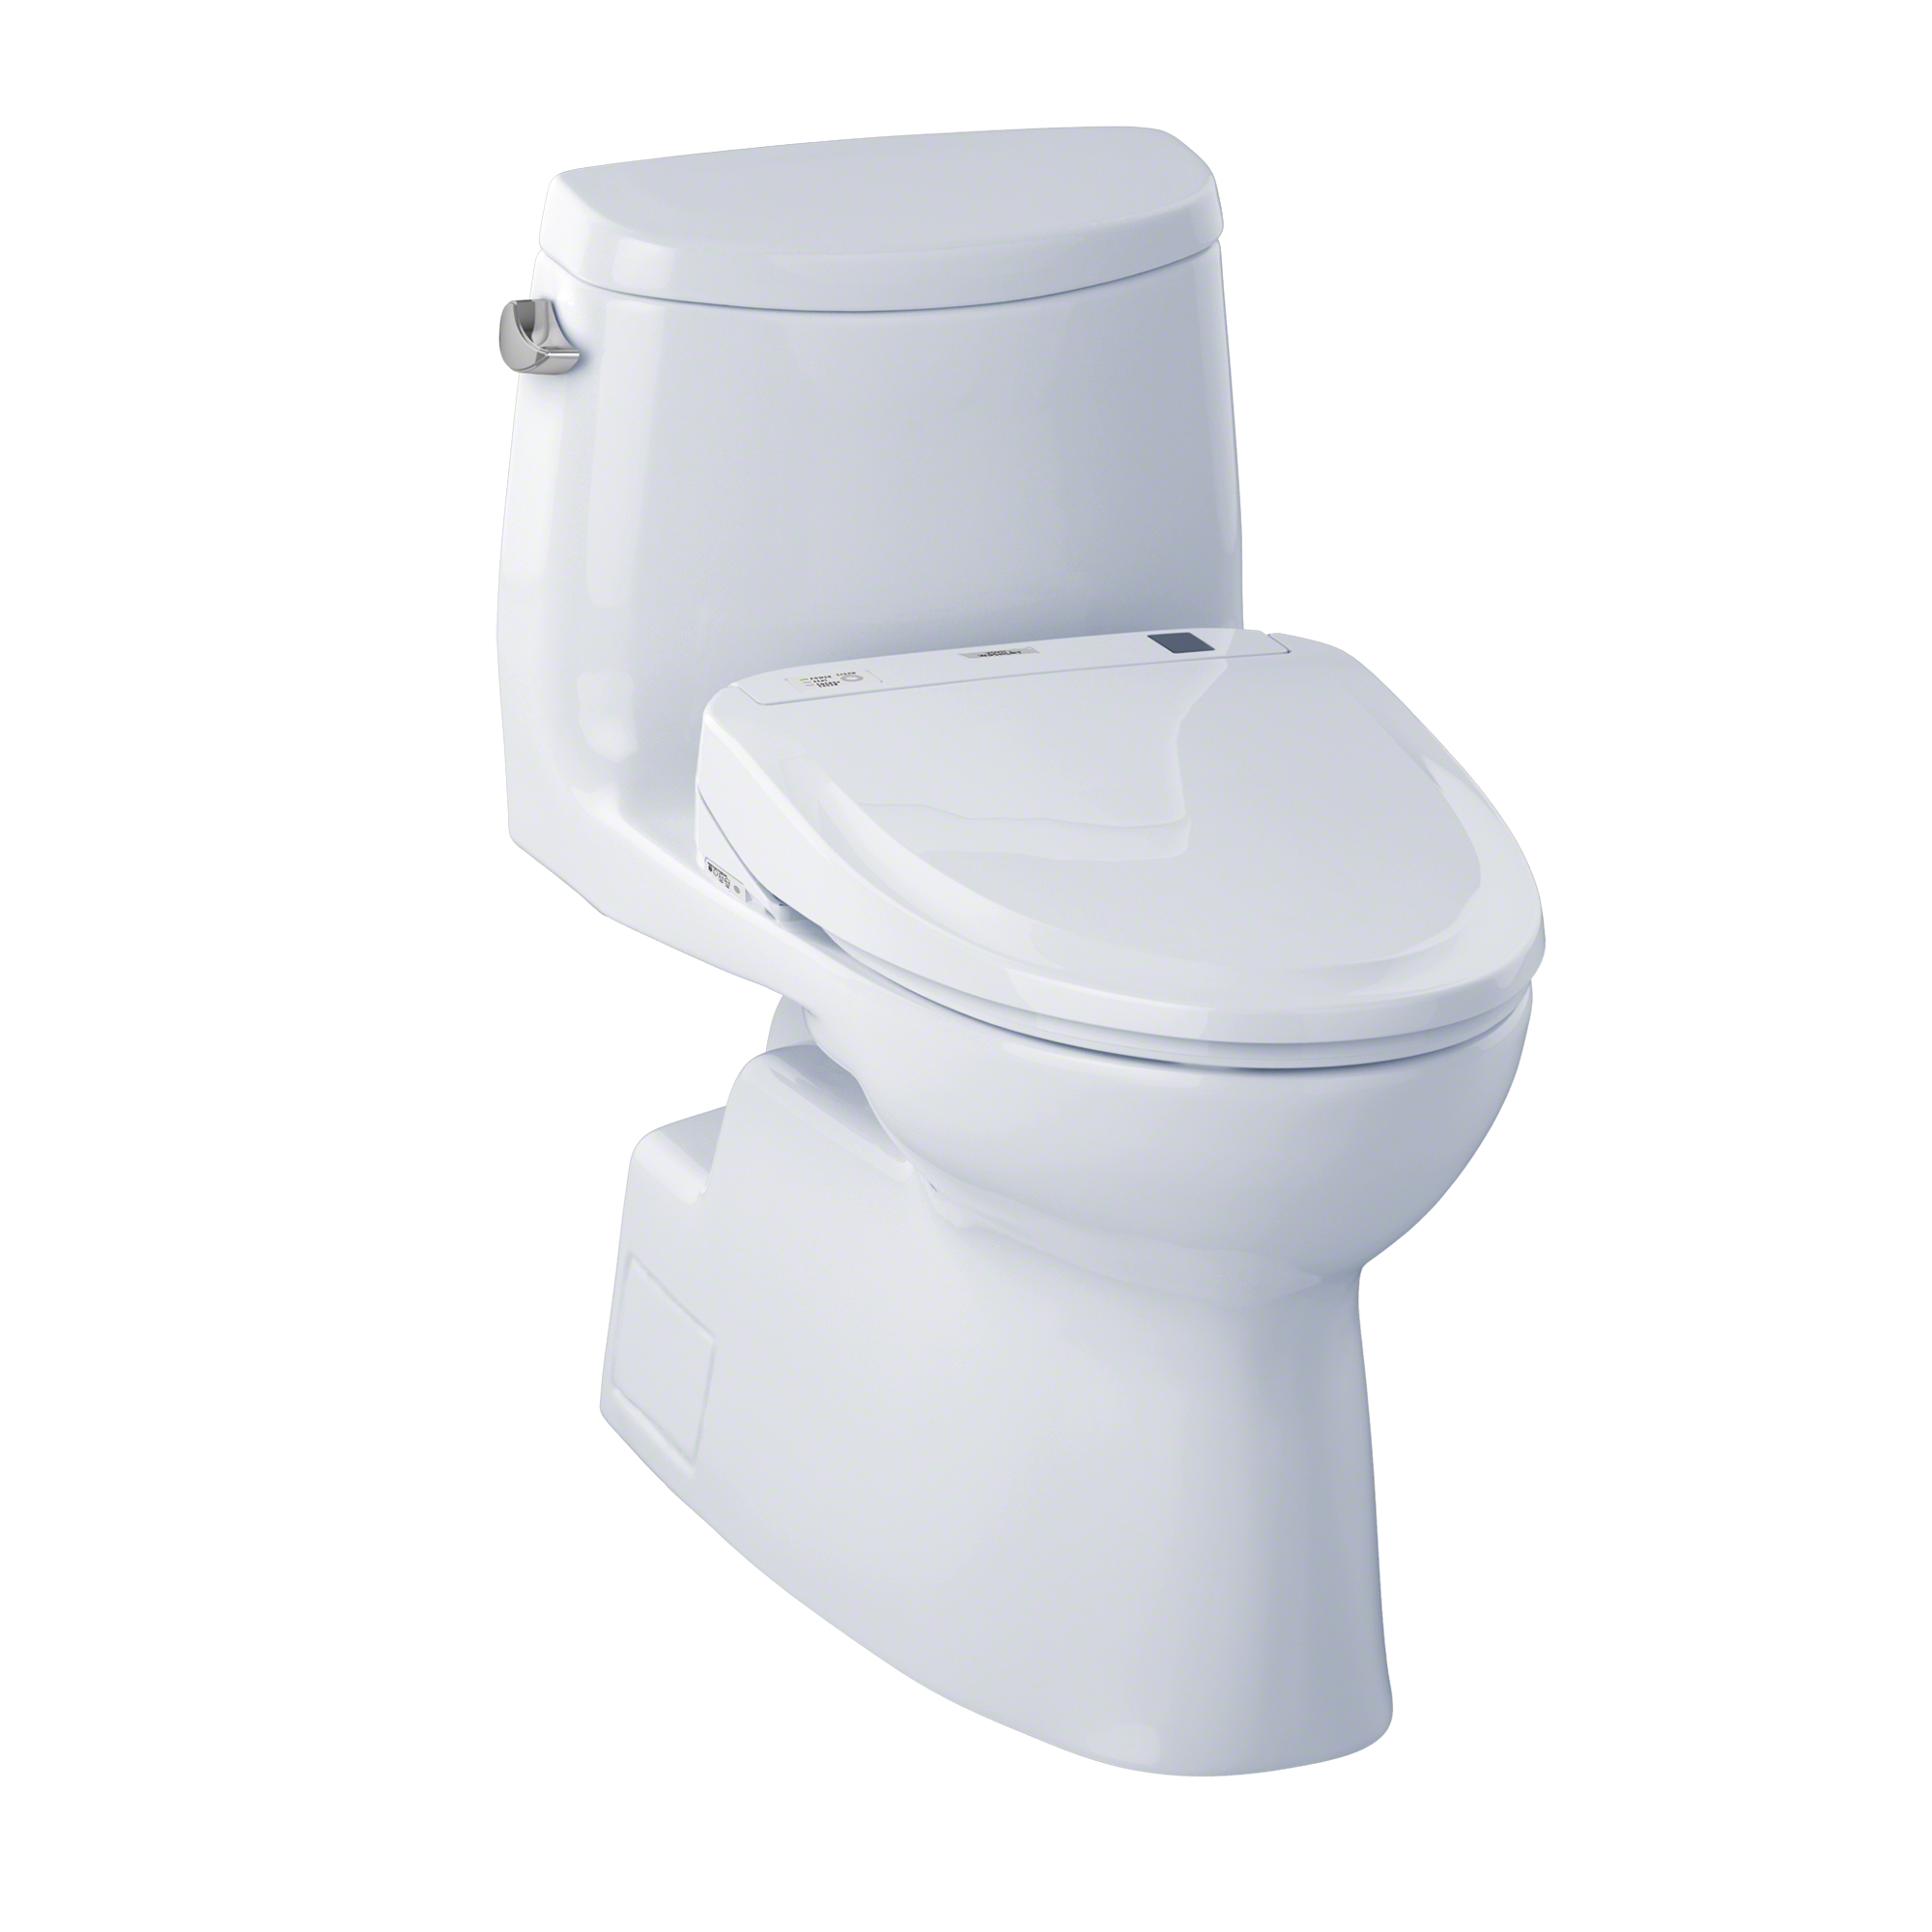 TOTO® Connect+® Kit Carlyle® II One-Piece Elongated 1.28 GPF Toilet and Washlet® S300e Bidet Seat, Cotton White - MW614574CEFG#01